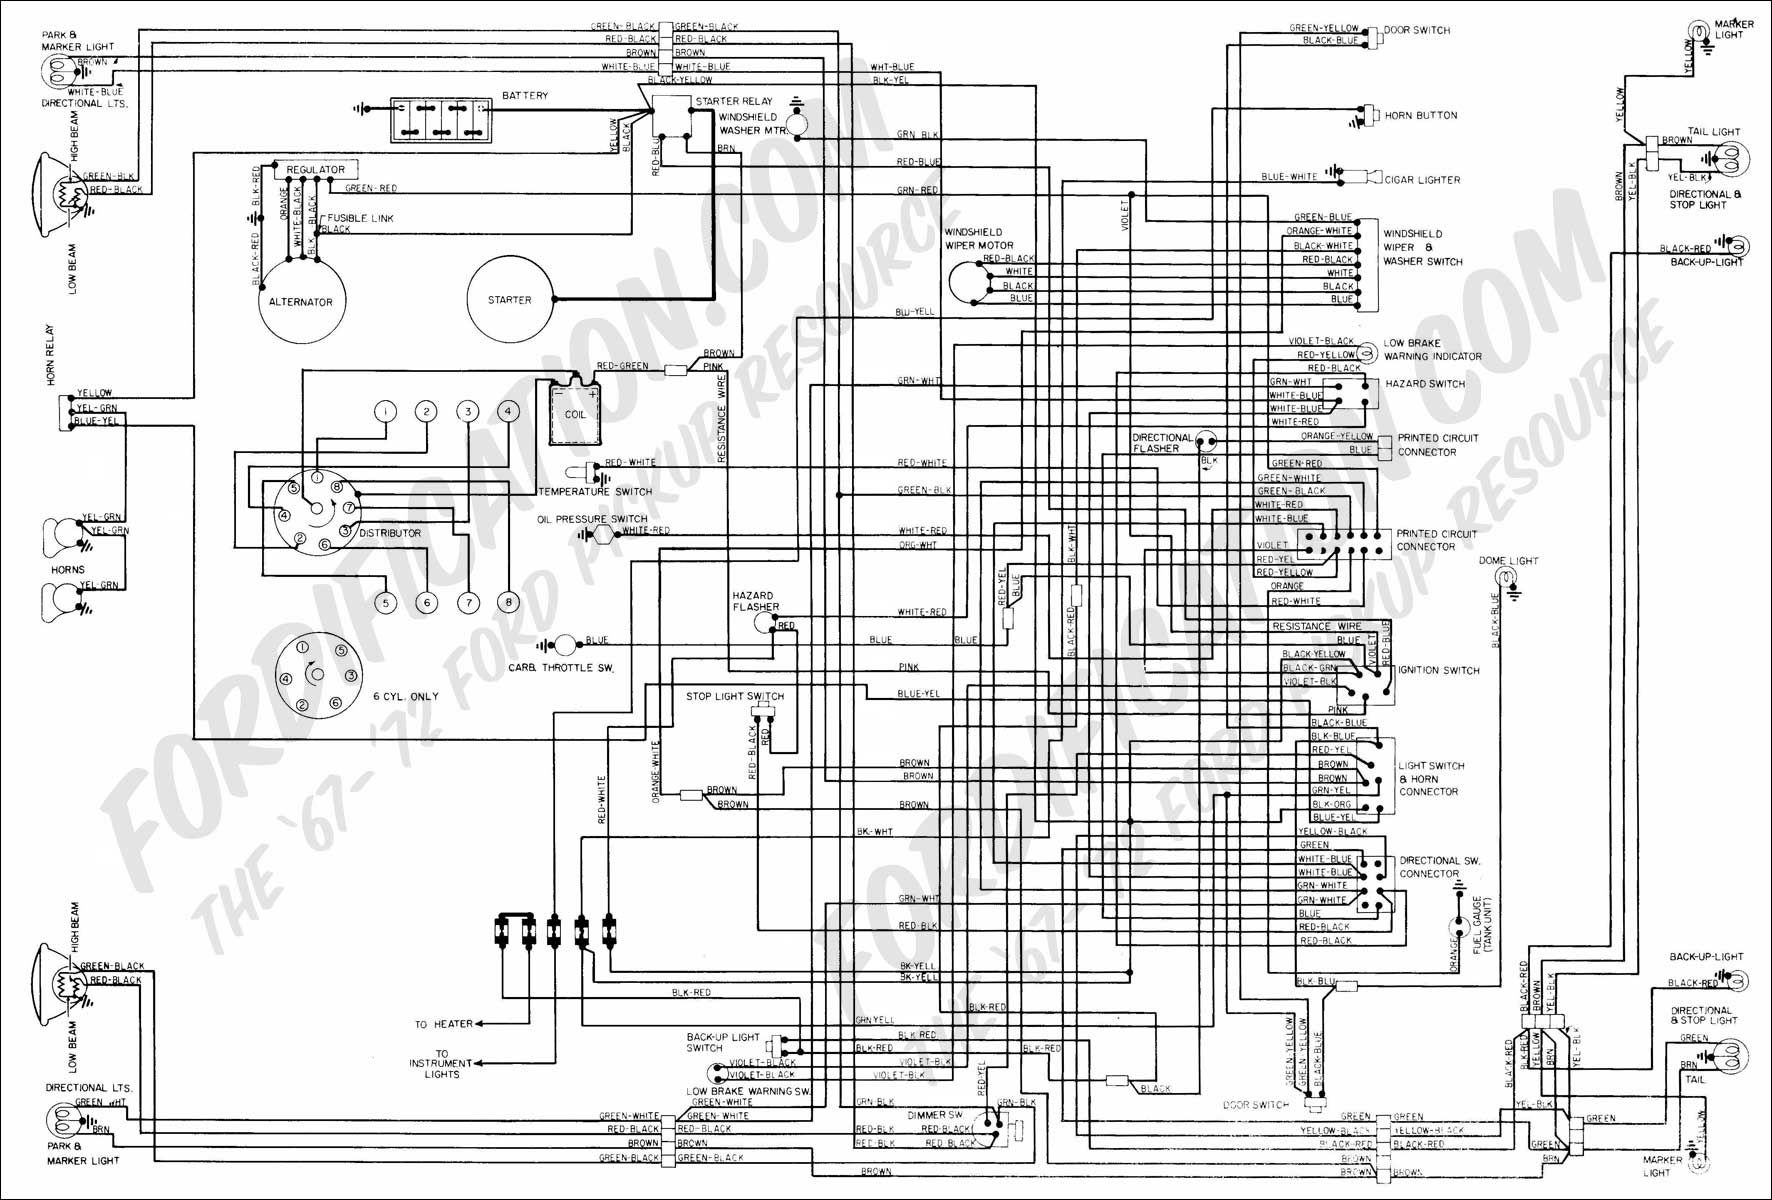 be873db495753211c2fc9a563f039b29 solenoid 1971 f250 1971 ford f100 wiring diagram www ford Ford Electrical Wiring Diagrams at virtualis.co